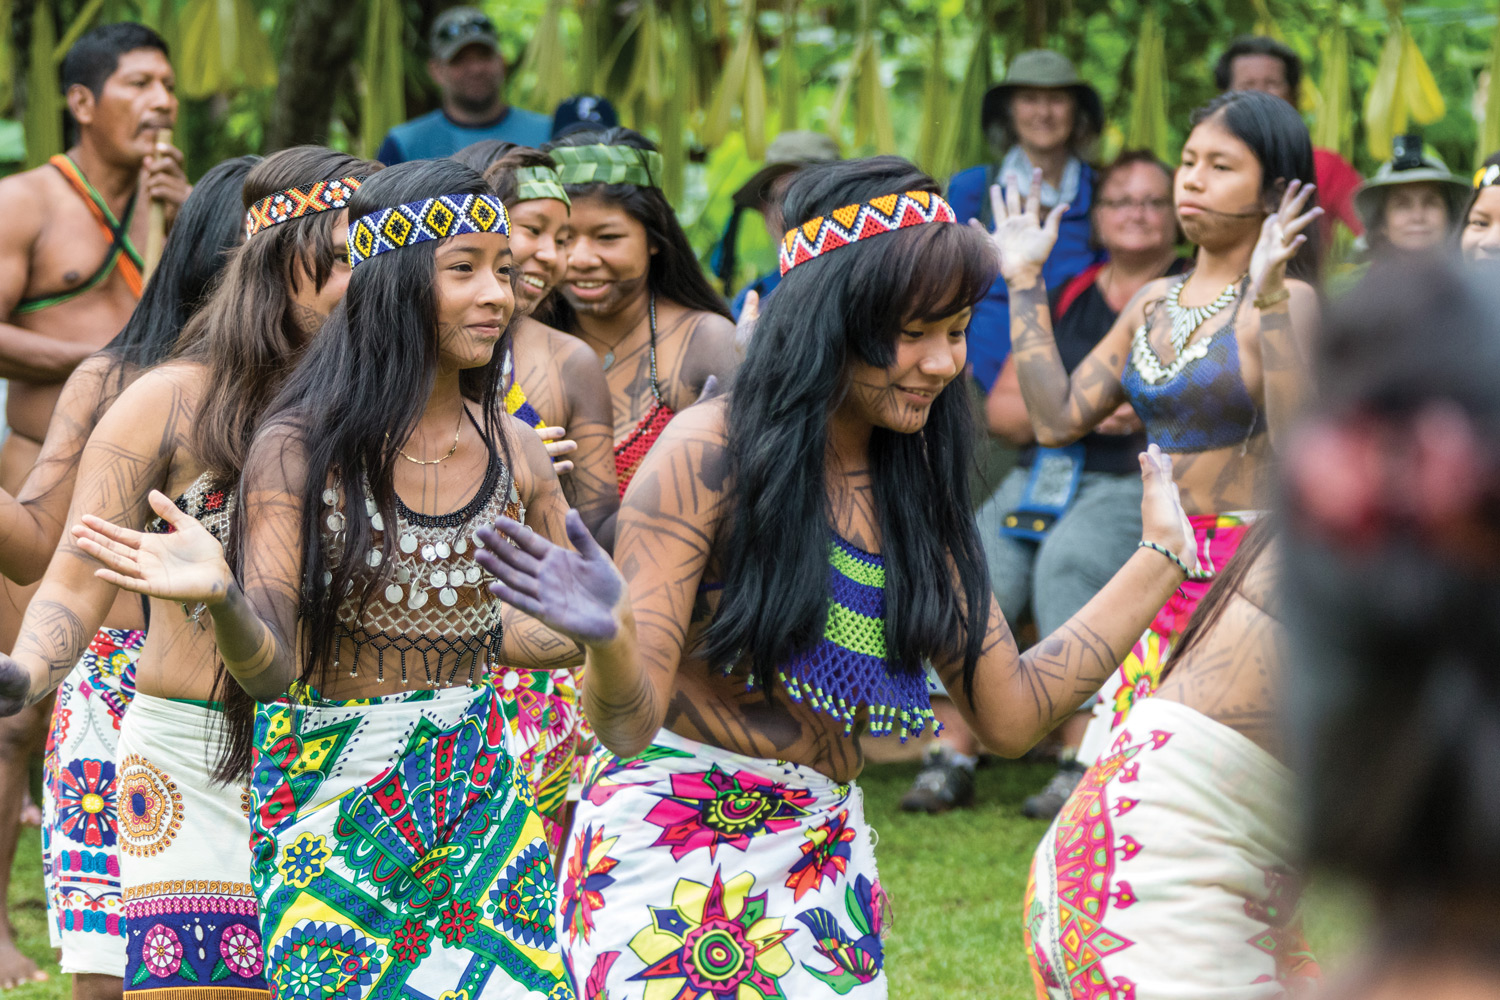 UnCruise's Panama Canal voyage affords the opportunity for travelers to visit with the Embera tribe.